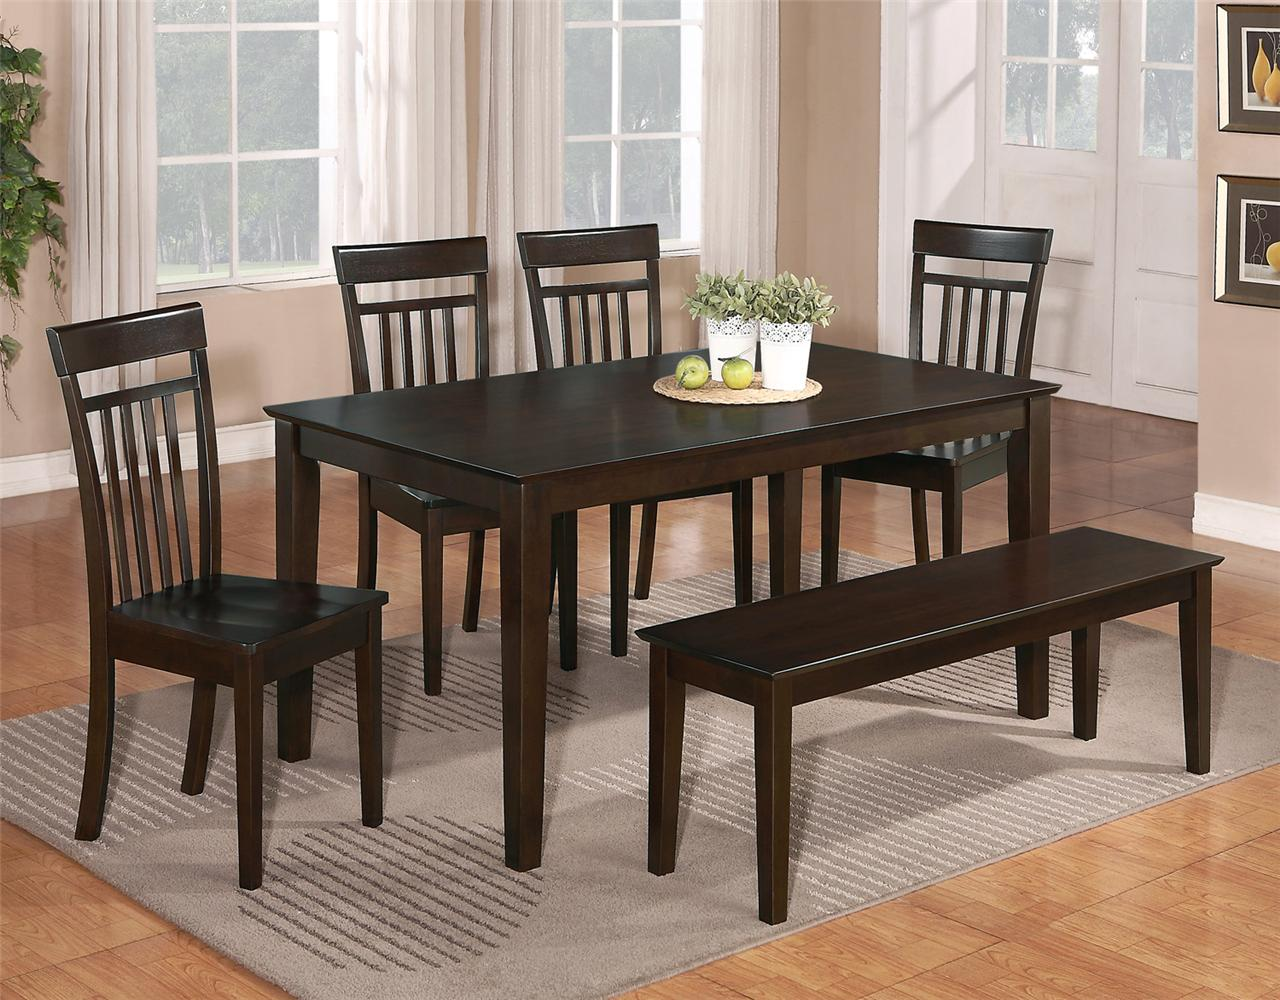 6 pc dinette kitchen dining room set table w 4 wood chair for 4 dining room table